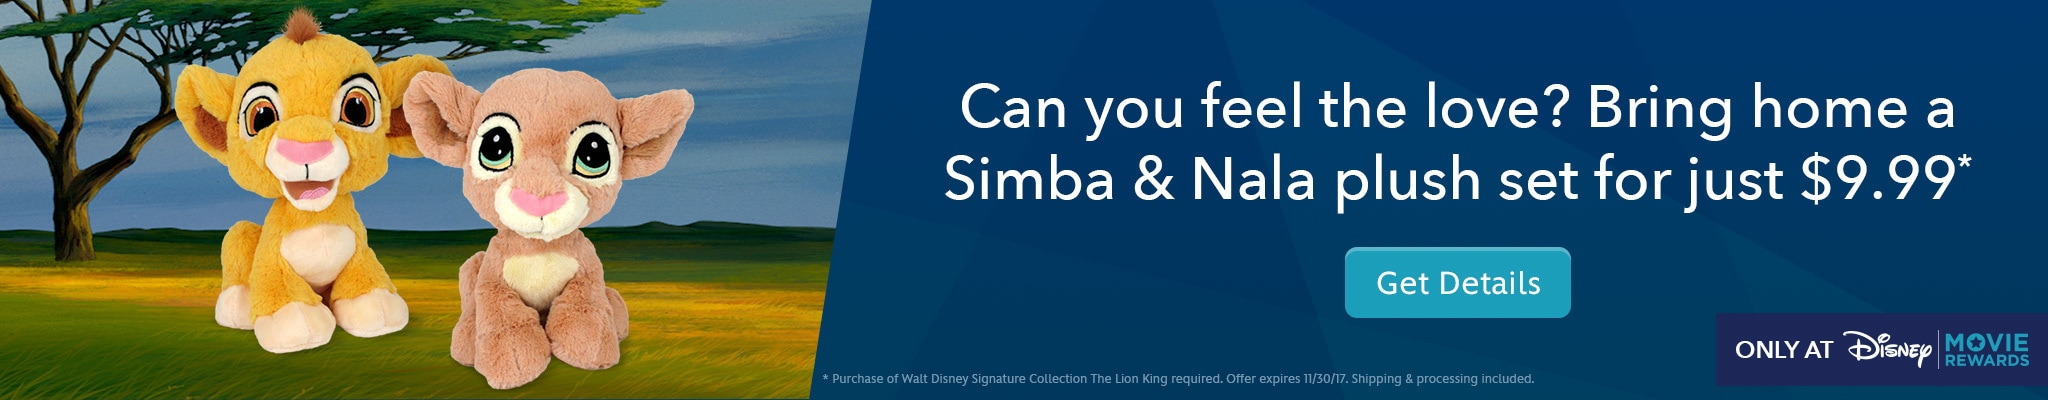 Visit Disney Movie Rewards for Simba & Nala Plush for just $9.99